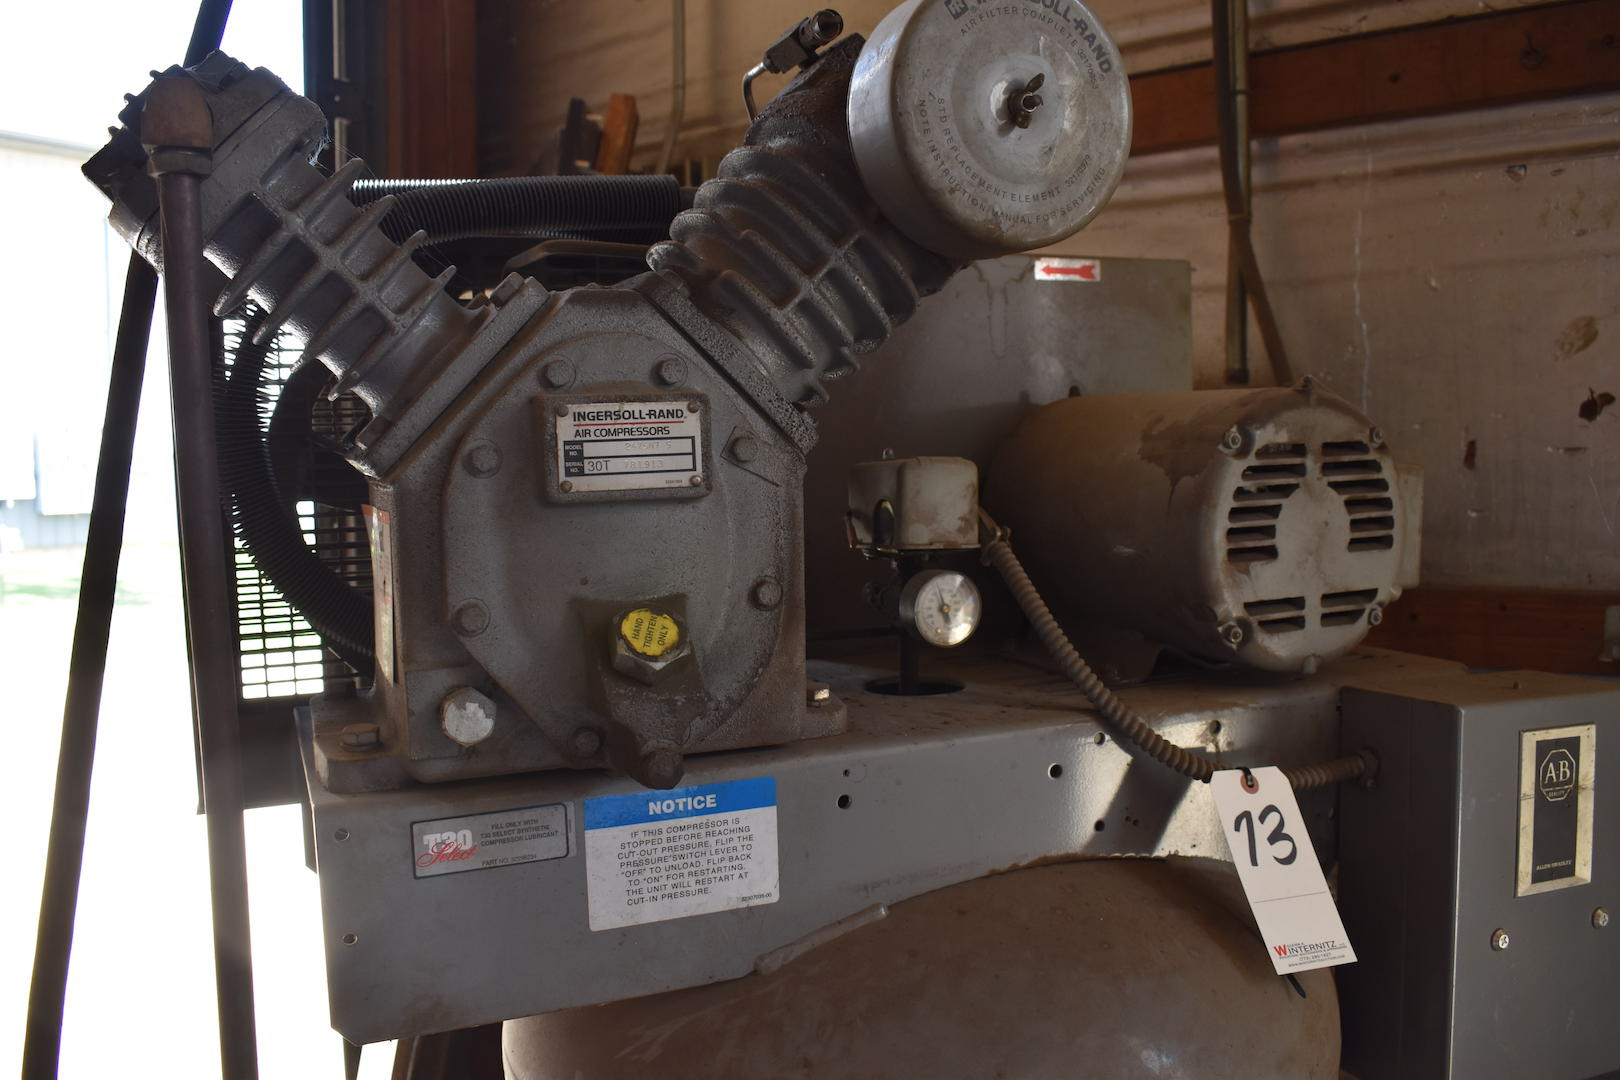 Lot 73 - Ingersoll Rand 7.5 HP Model T-30 Vertical Tank Mounted Air Compressor, S/N 30T781913, 230/460 Volt